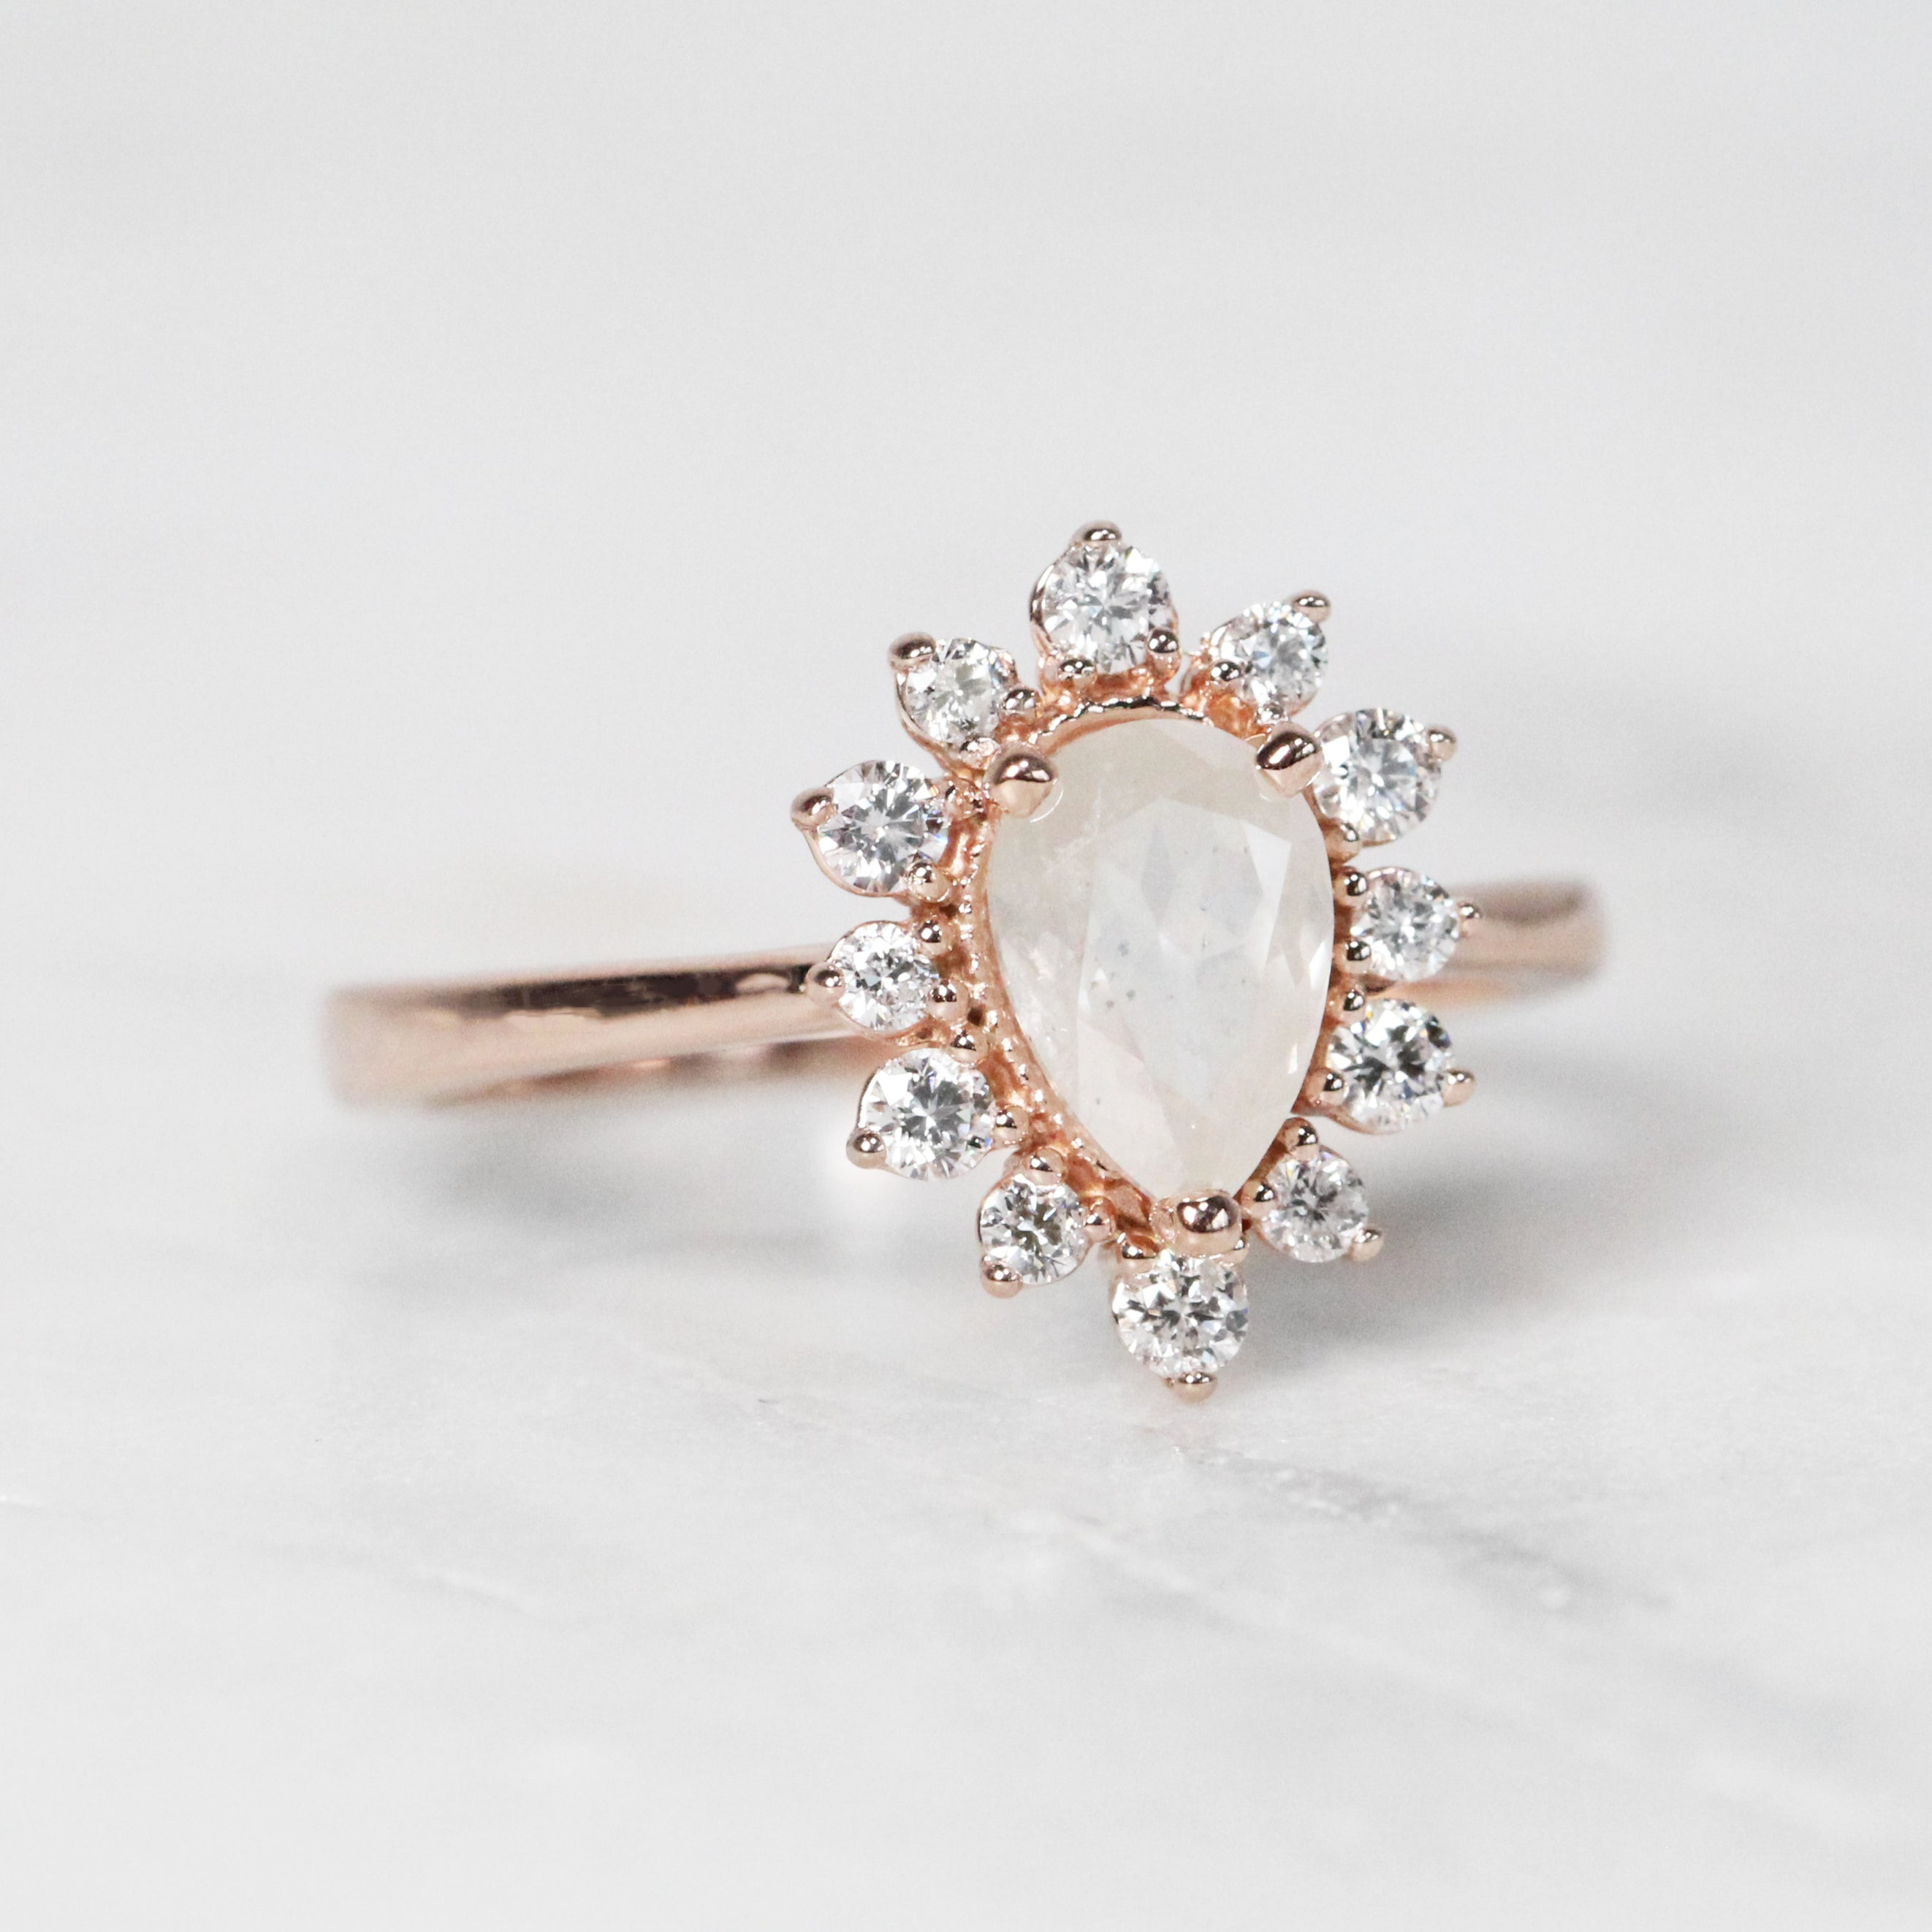 Lucy Ring with 1.01 carat Misty White Pear Diamond in 10k Rose Gold - Ready to Size and Ship - Celestial Diamonds ® by Midwinter Co.